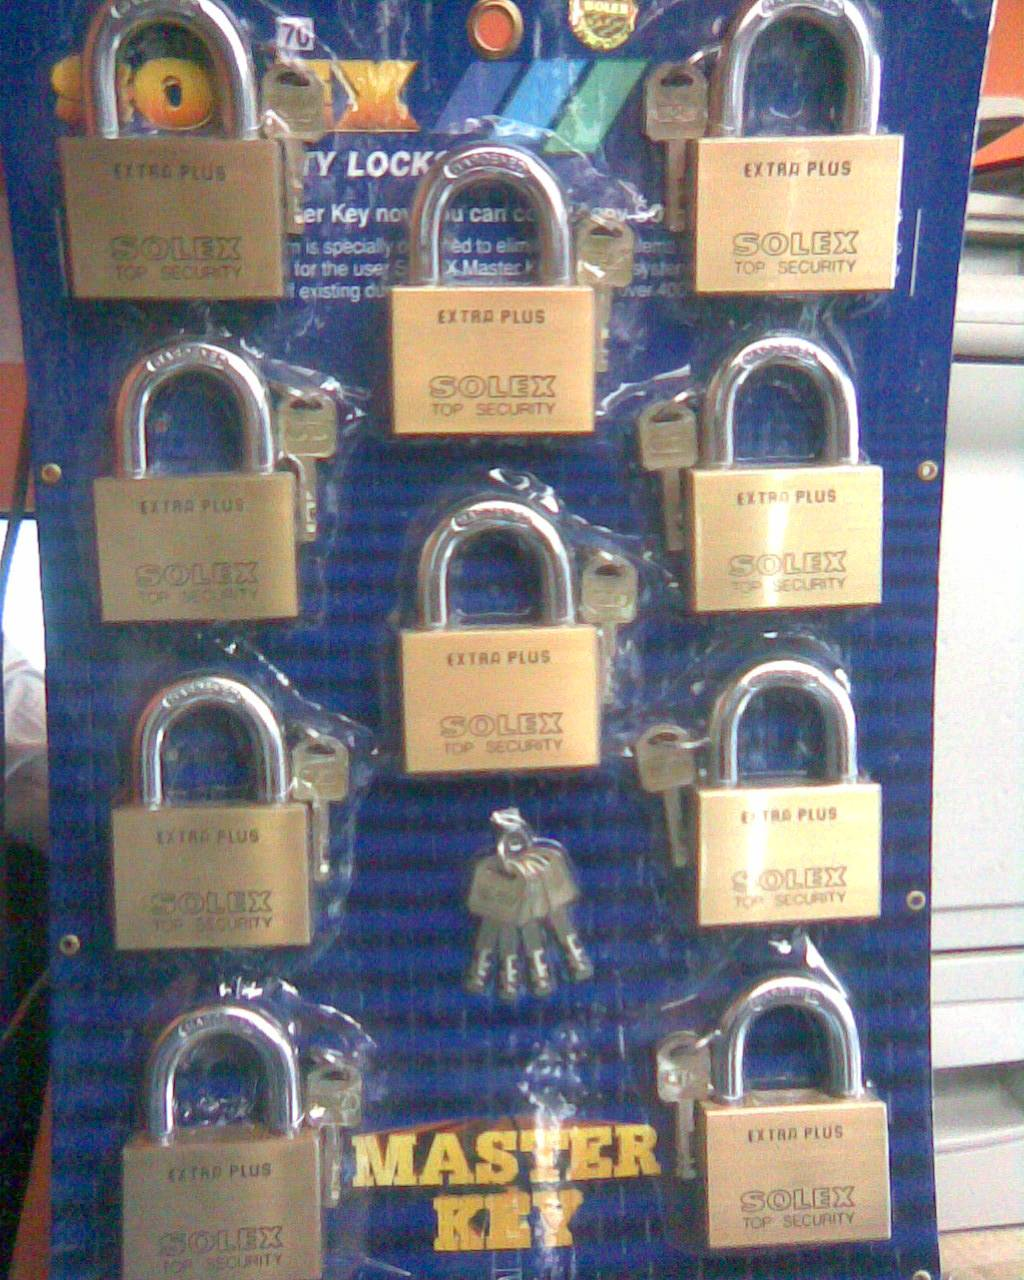 SOLEX TOP SECURITY PADLOCK DUBAI, PAD LOCK  DUBAI